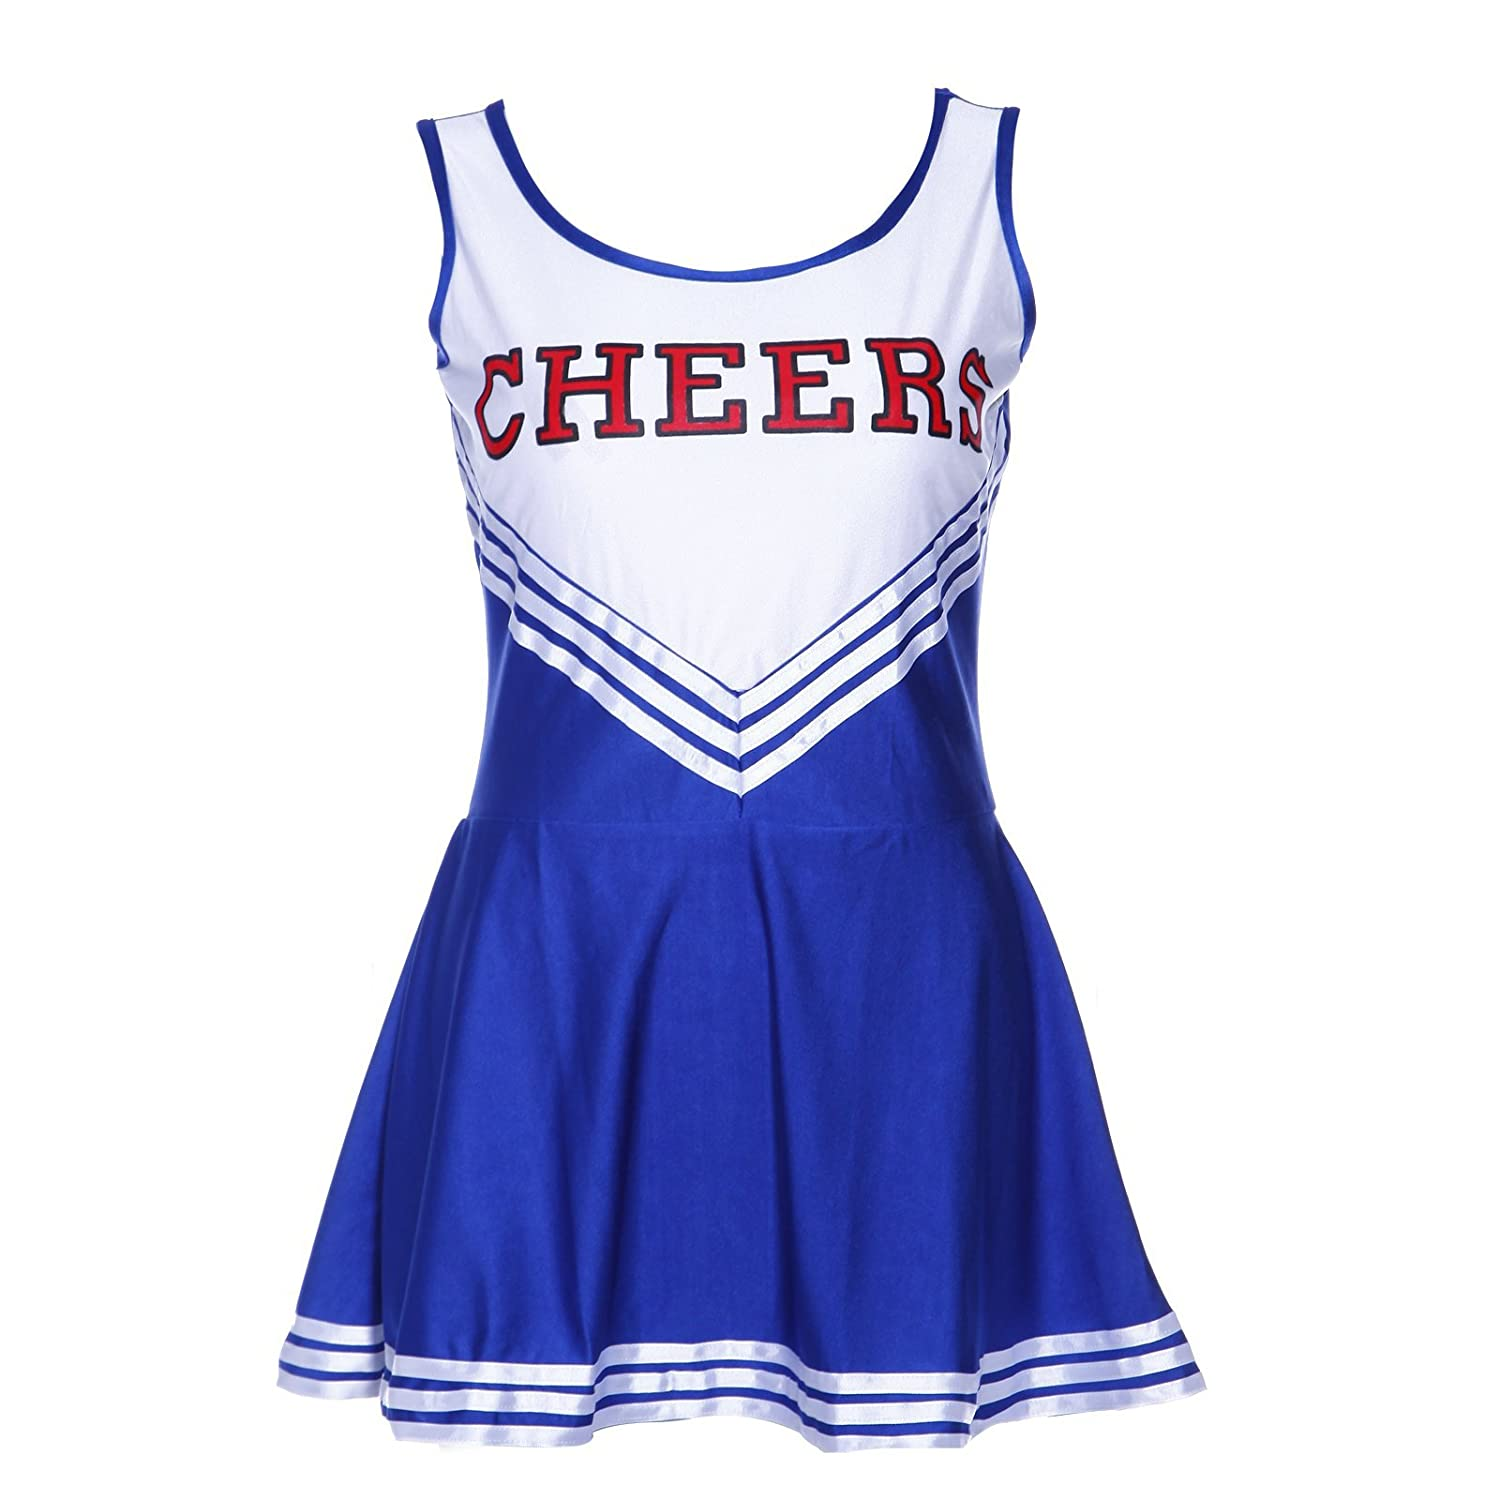 TOOGOO(R) Robe debardeur Pom pom girl cheerleaders Bleu costume deguisement L(38-40) 037074